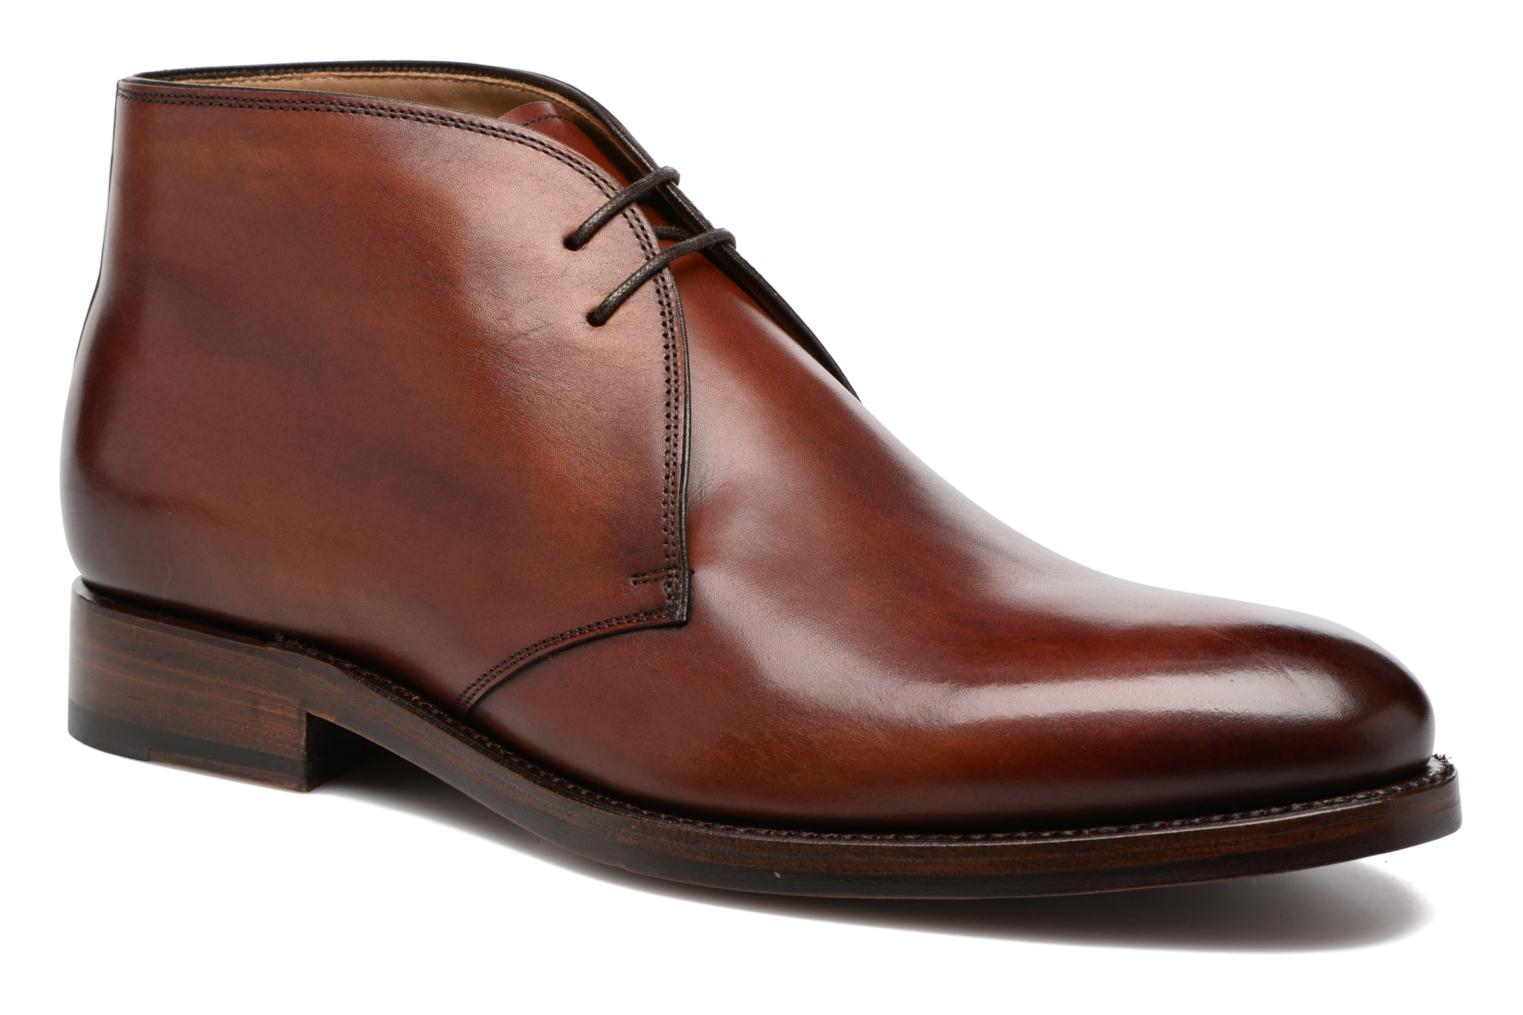 Marques Chaussure luxe homme Marvin&Co Luxe homme WASPEN - Cousu Goodyear Elba cuero